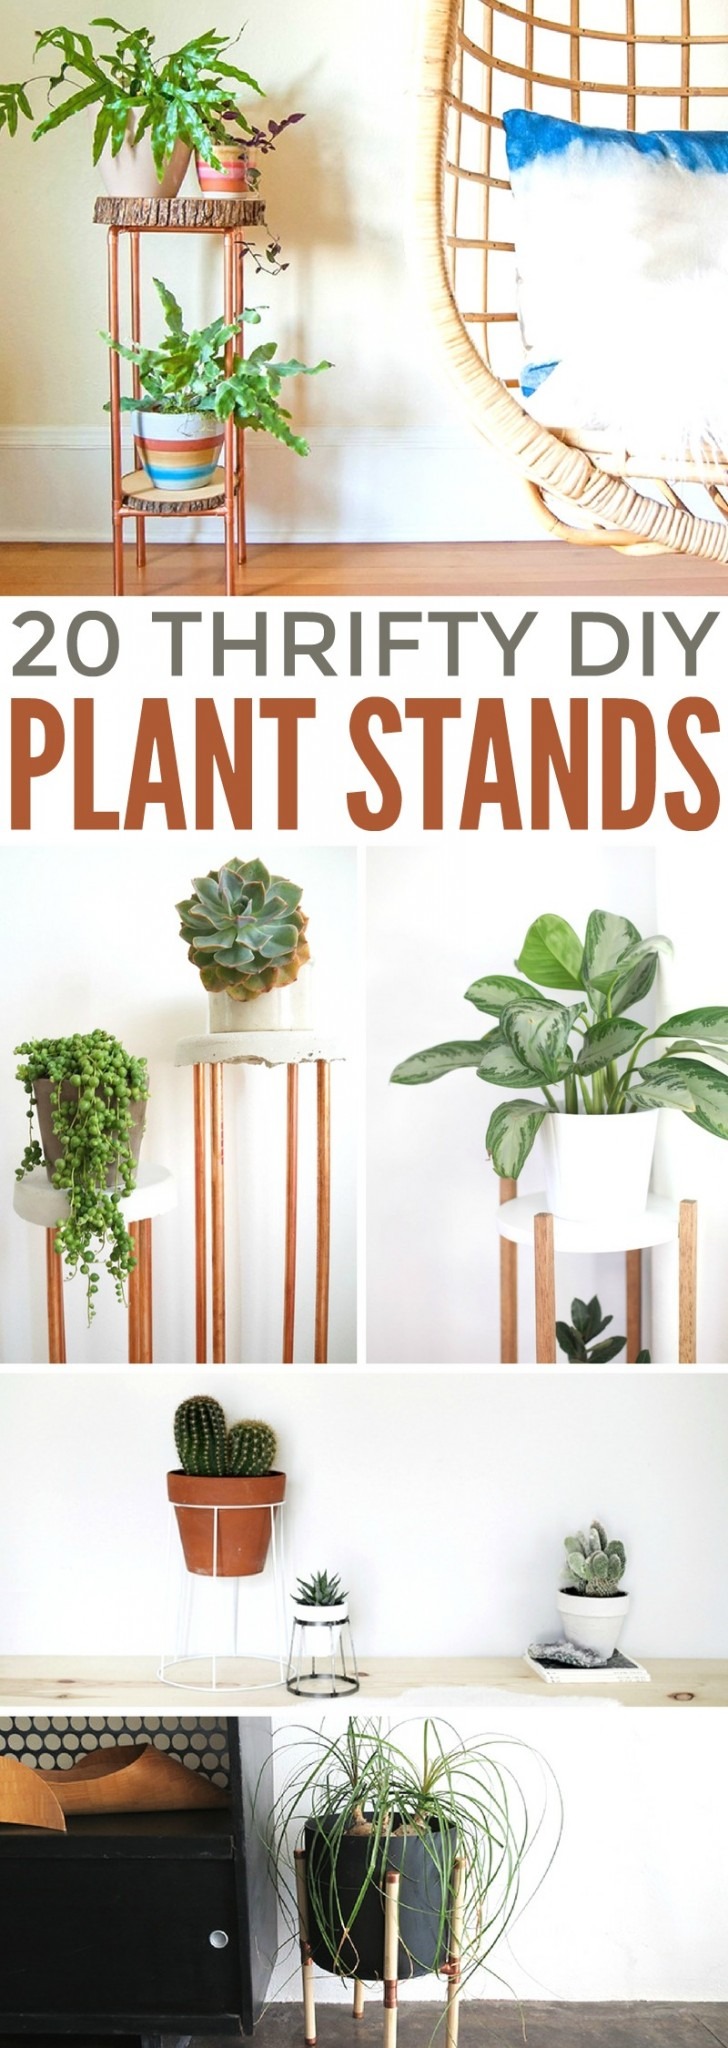 20 Thrifty Diy Plant Stands Frugal Mom Eh